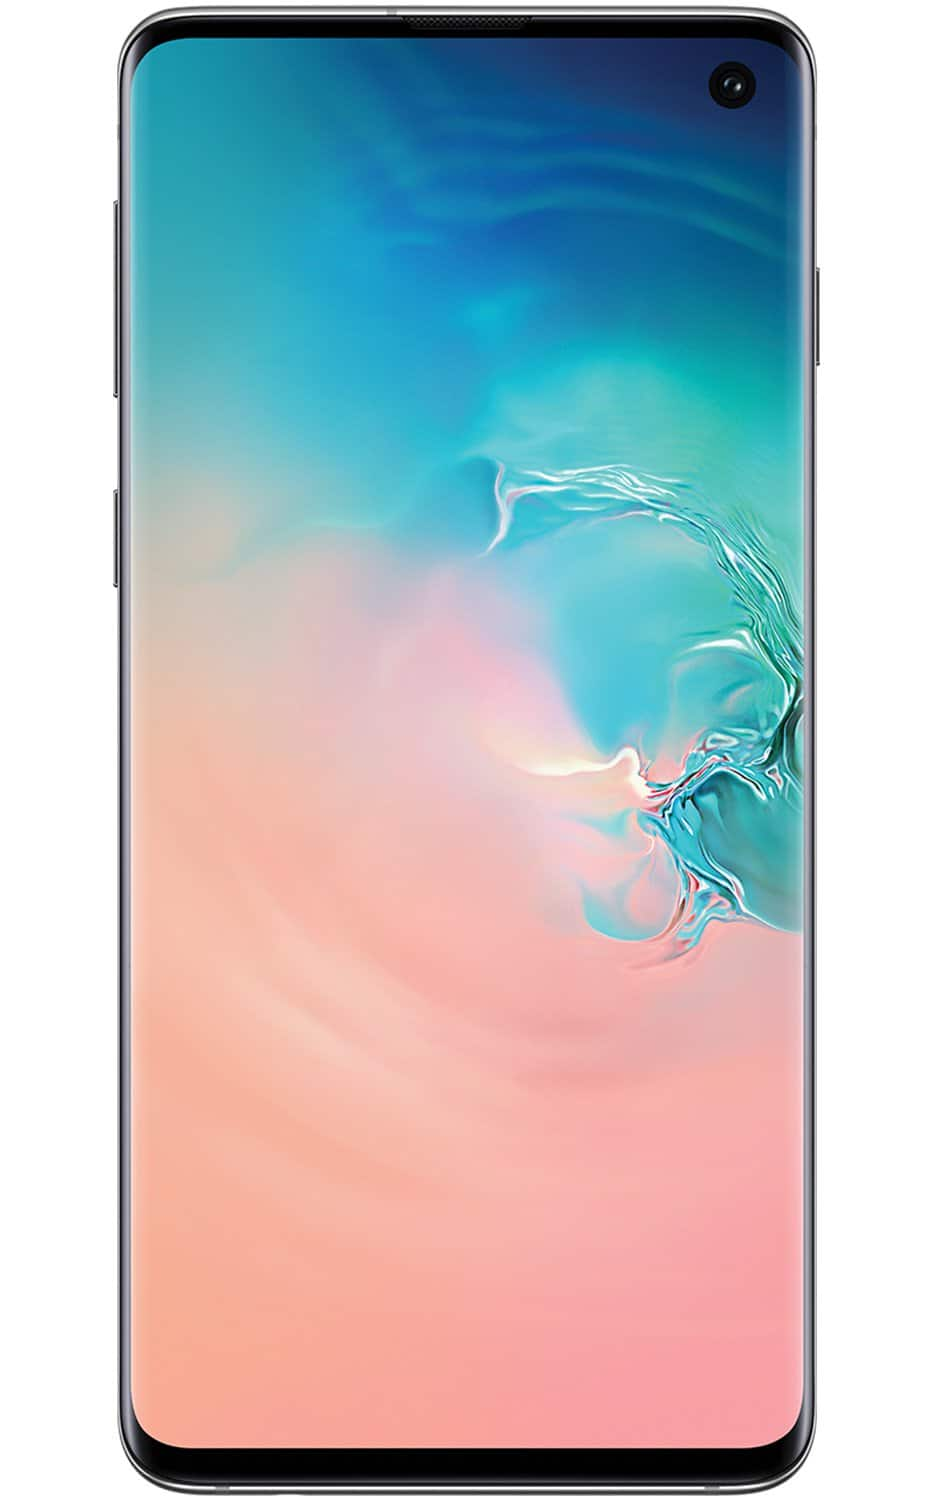 Samsung S10 Pricing For Walmart Confirmed - S10e $599, S10 $749, S10+ $799 - W/EIP